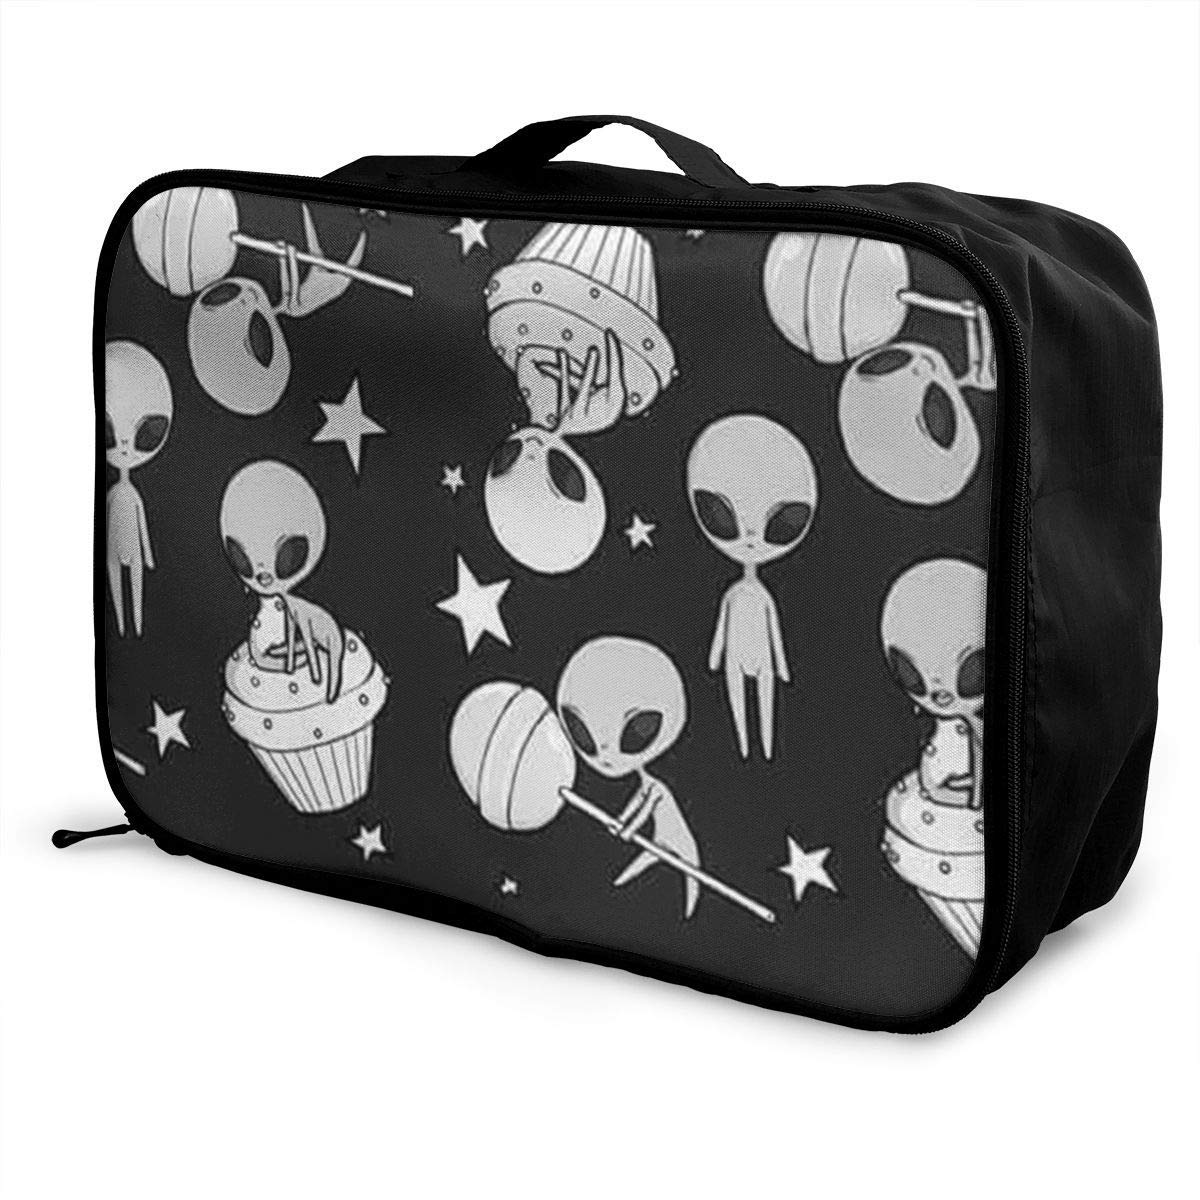 Portable Luggage Duffel Bag Funny Alien Pattern Travel Bags Carry-on In Trolley Handle